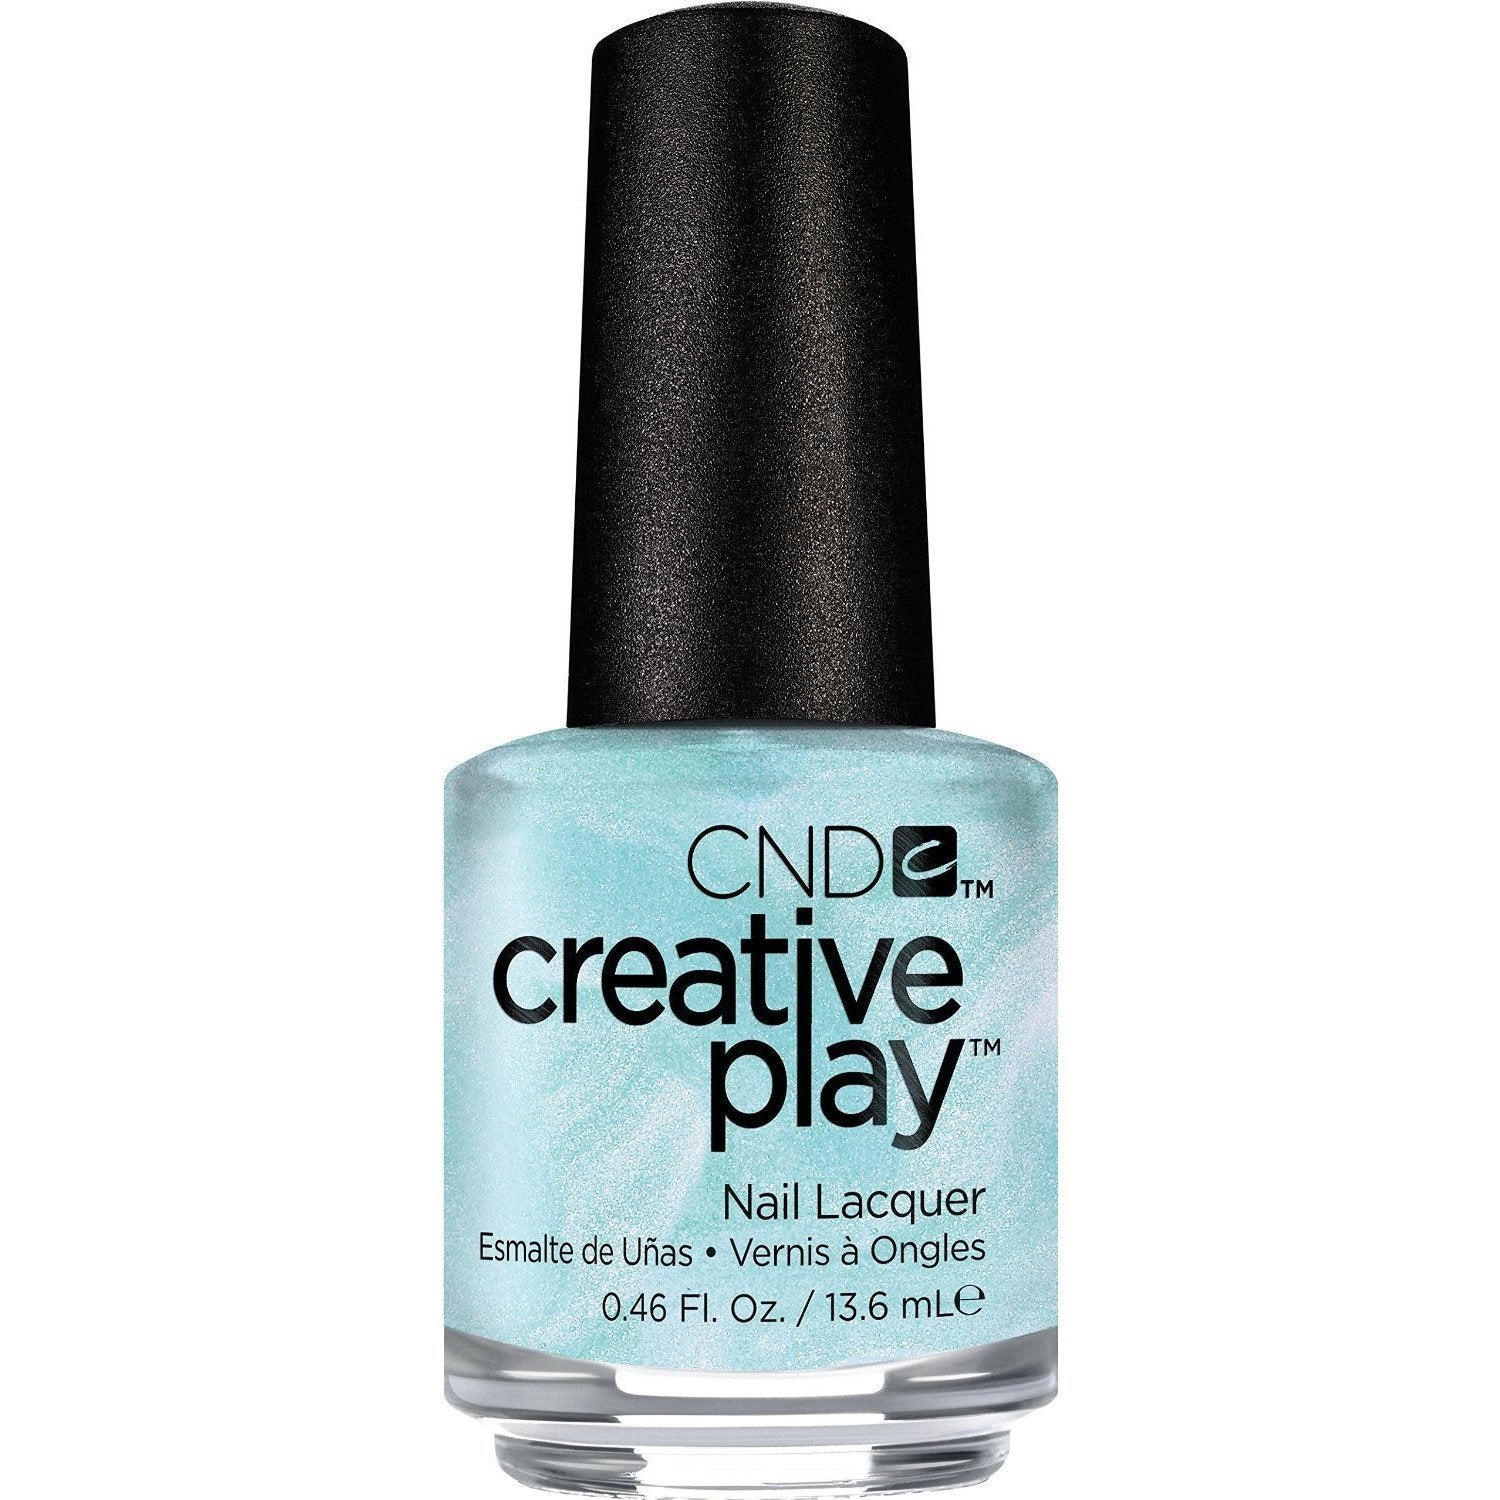 CND Creative Play Nail Polish - Isle Never Let Go | CND - CM Nails & Beauty Supply